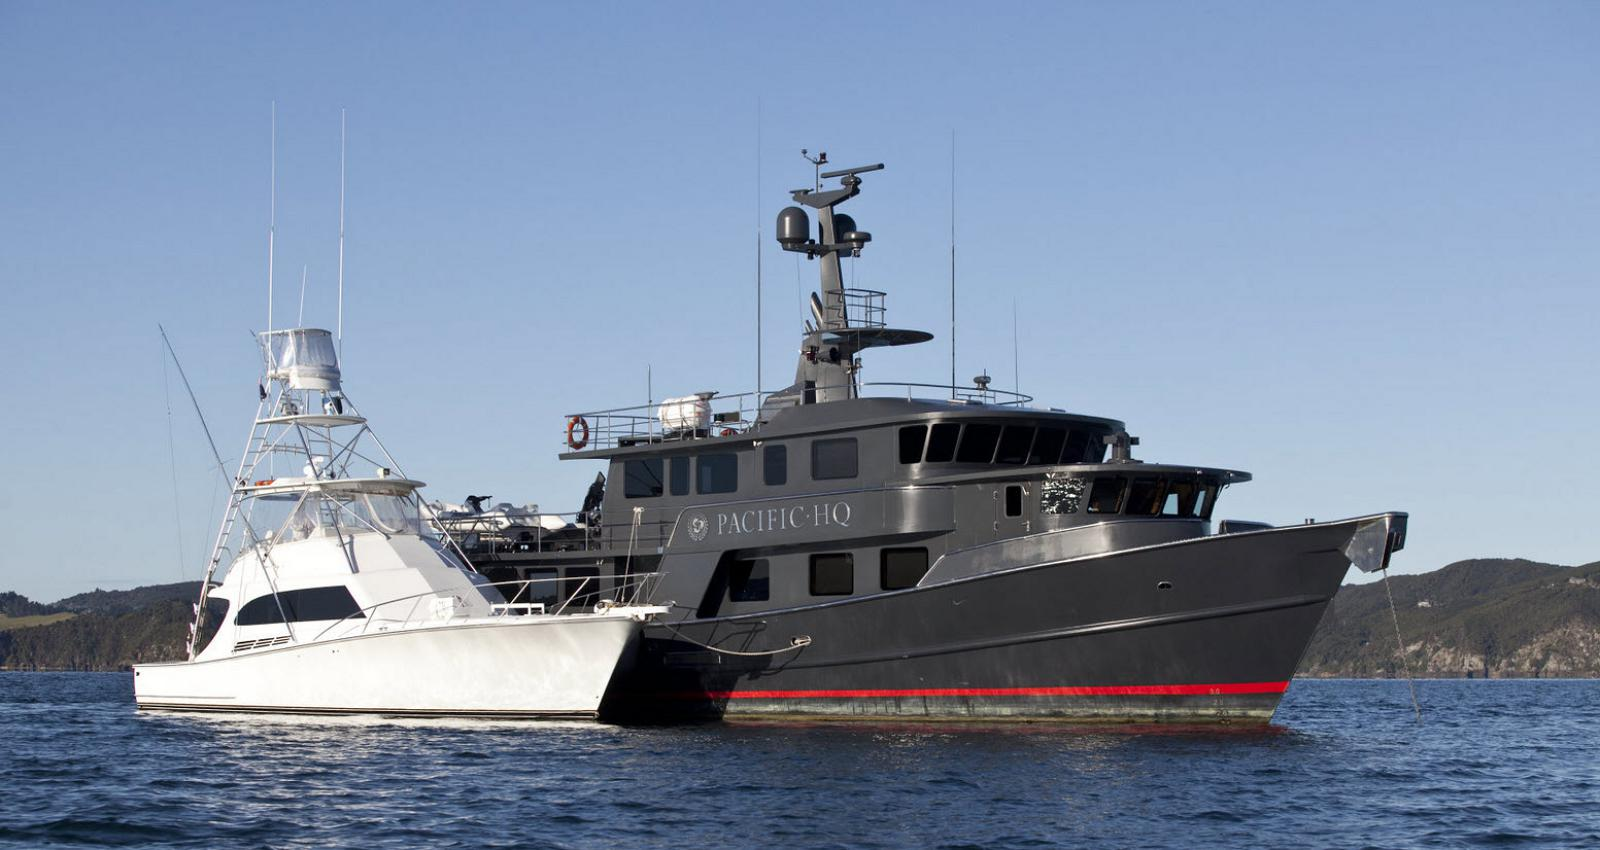 Pacific HQ Is The Ultimate Mother-Ship Yacht For Adventure